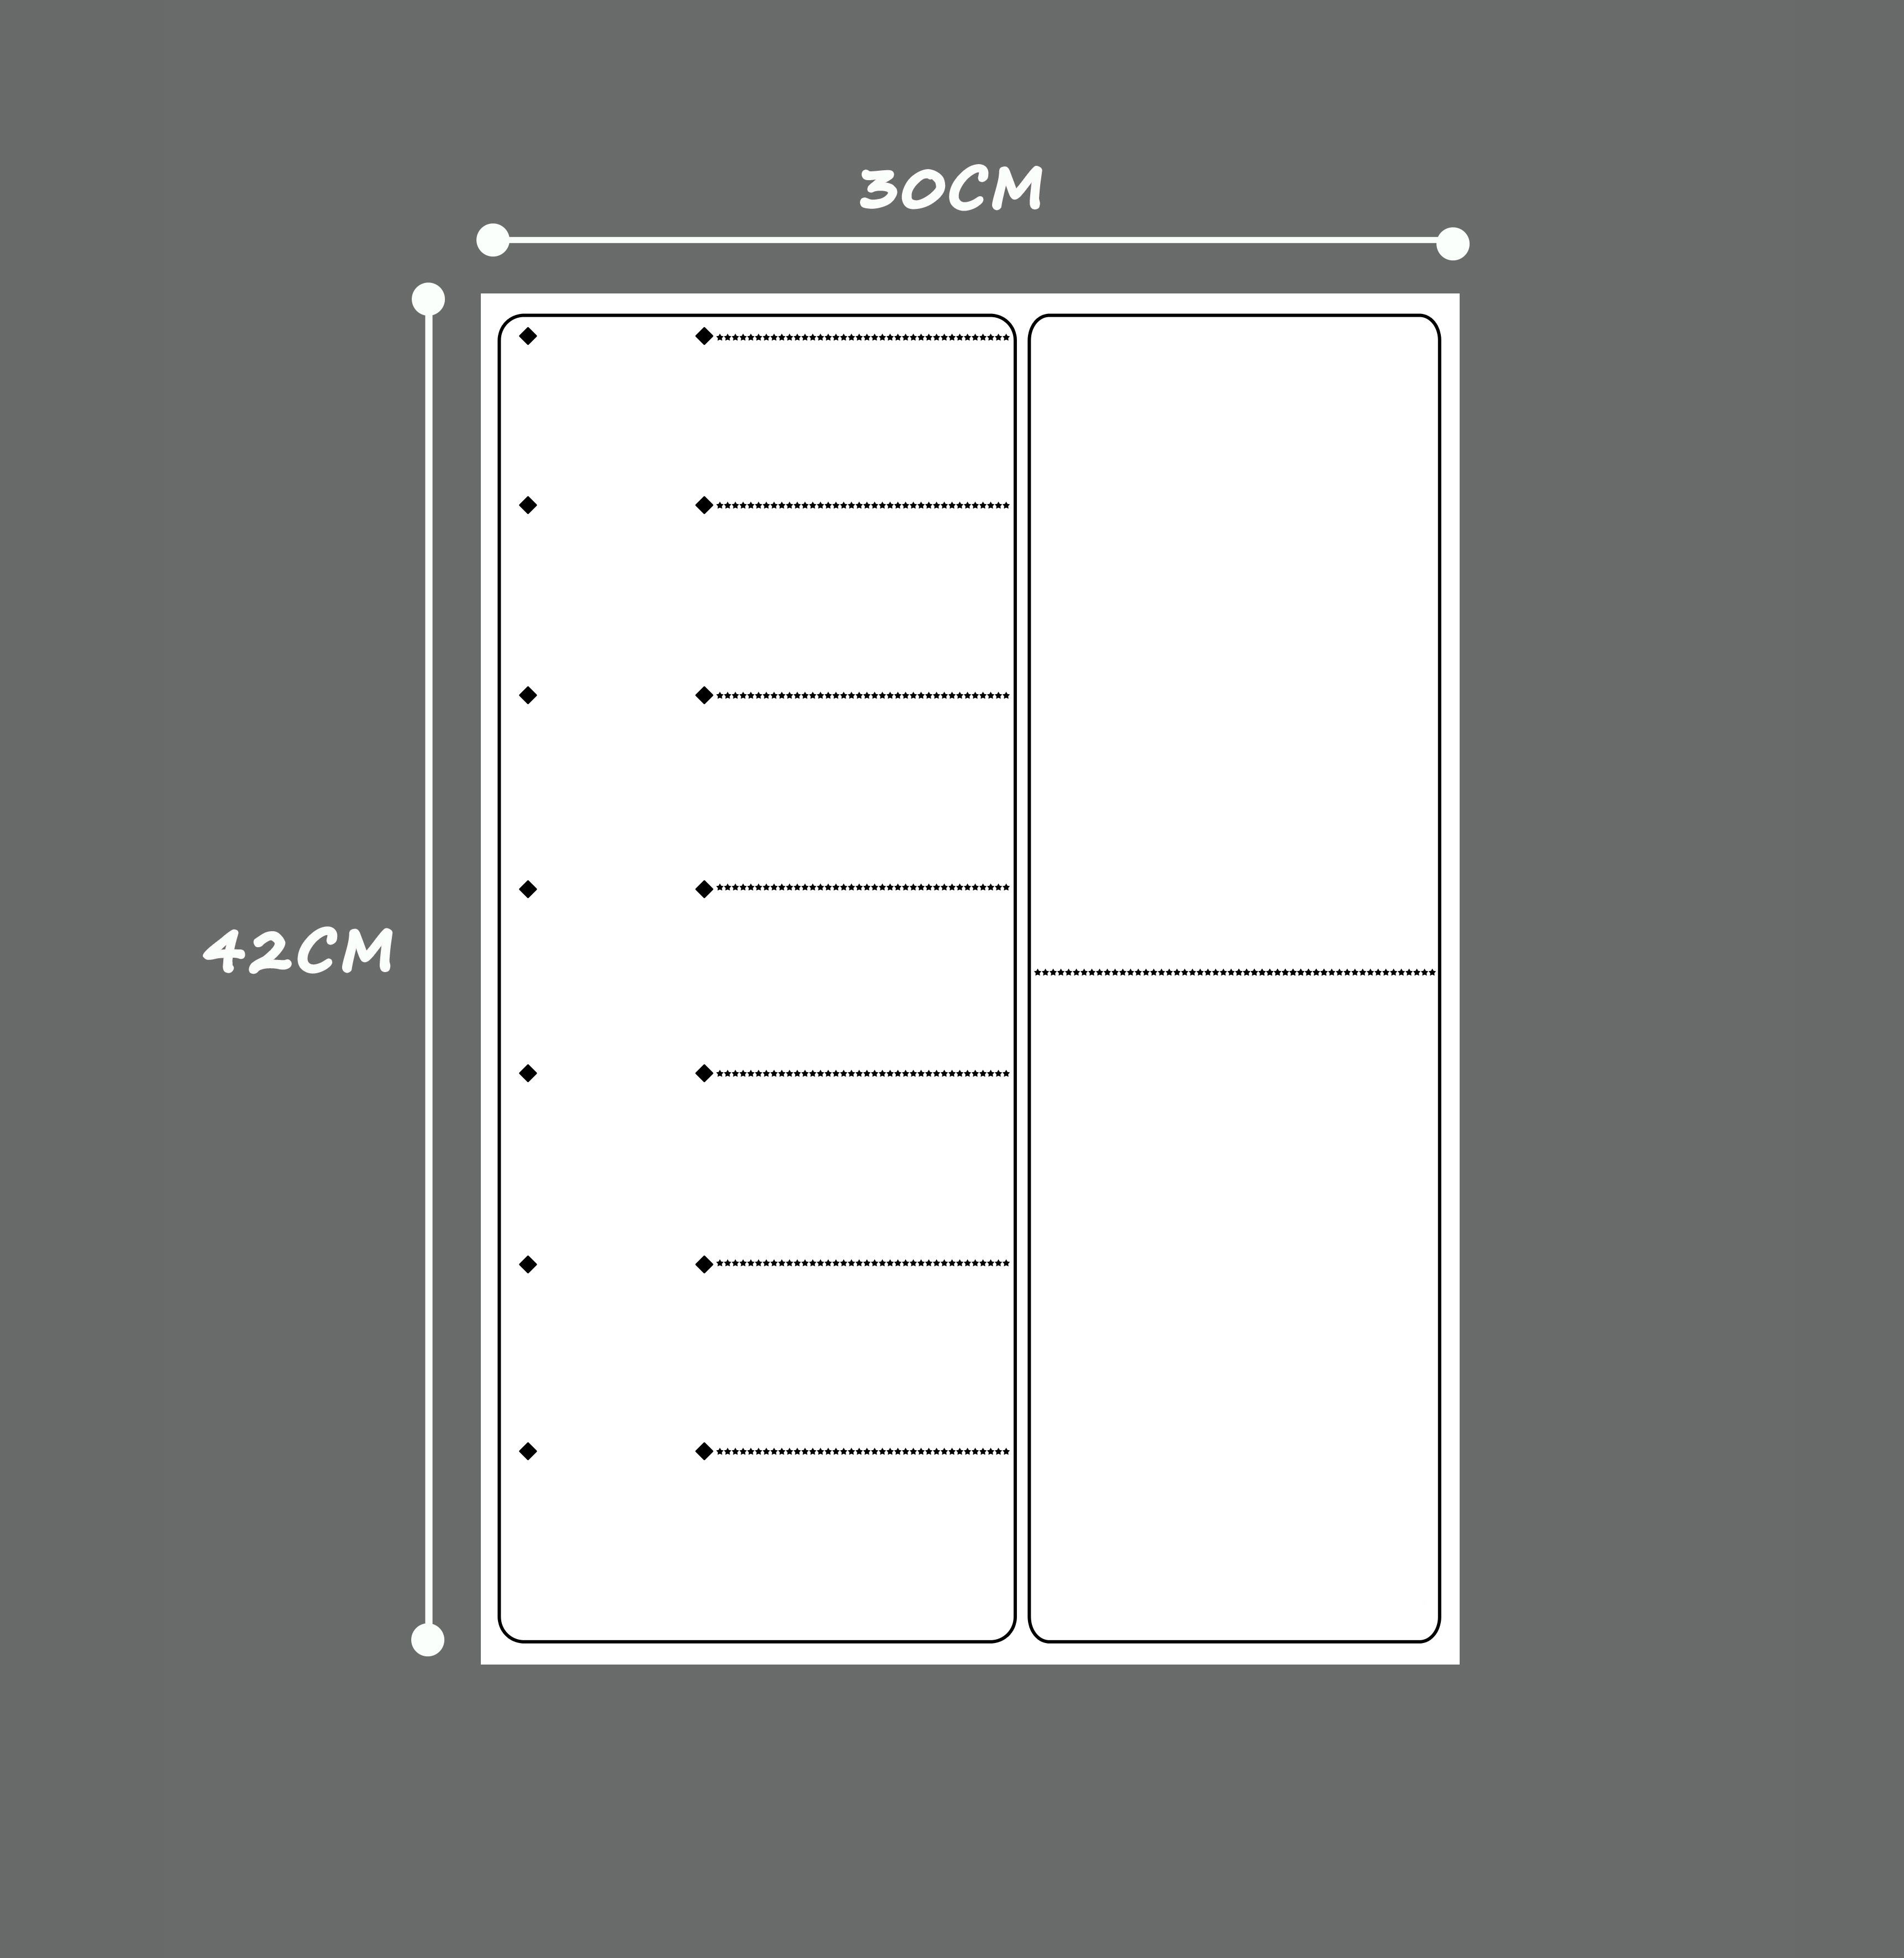 Image 3 - Magnetic A3 Planner Board SET for Kitchen Fridge Large Dry Erase Calendar Organizer To Do List Notepad Weekly Planner WhiteboardWhiteboard   -